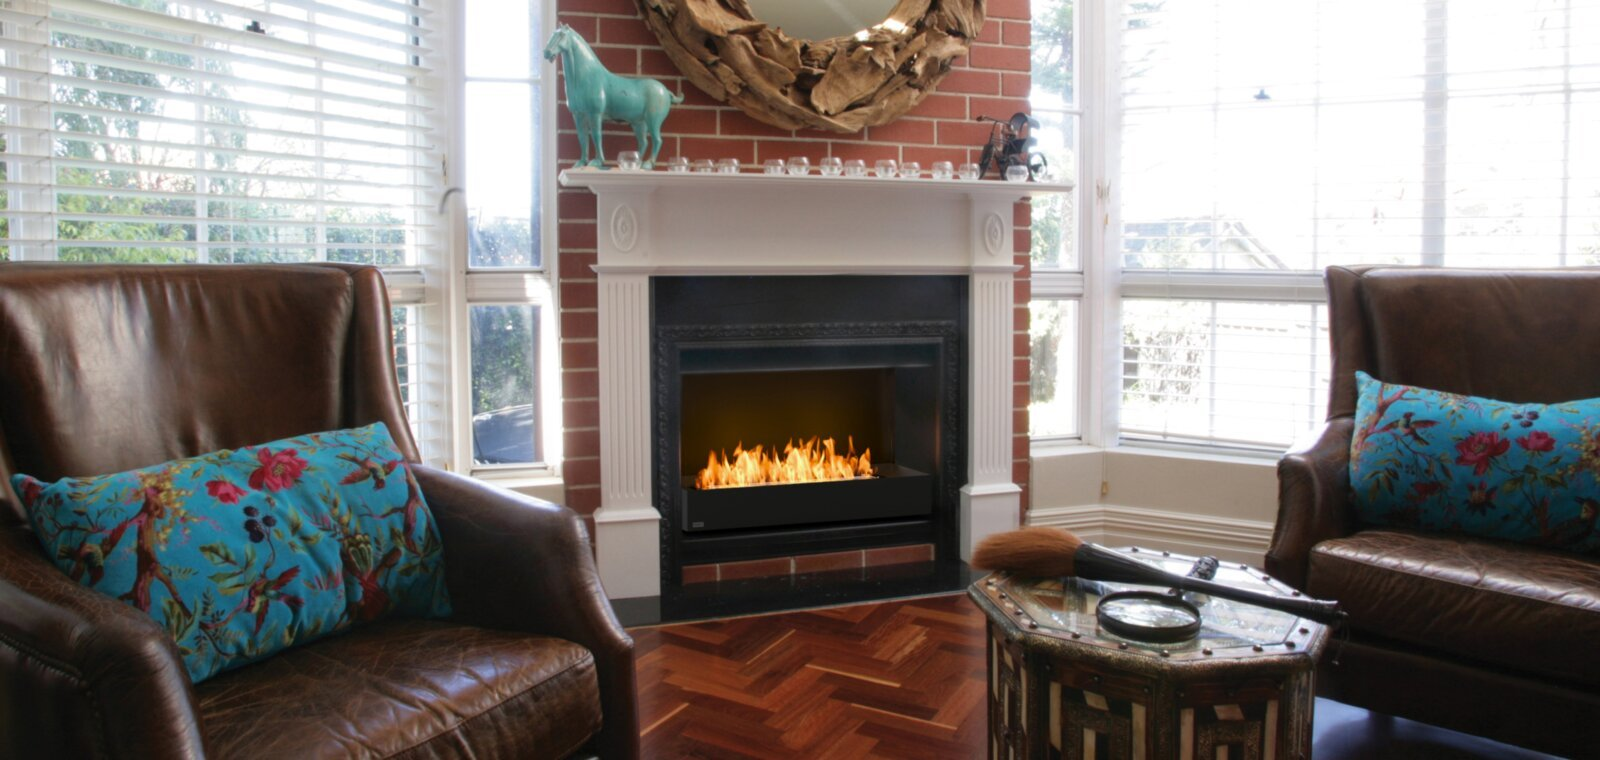 The Grate Fireplace Sale